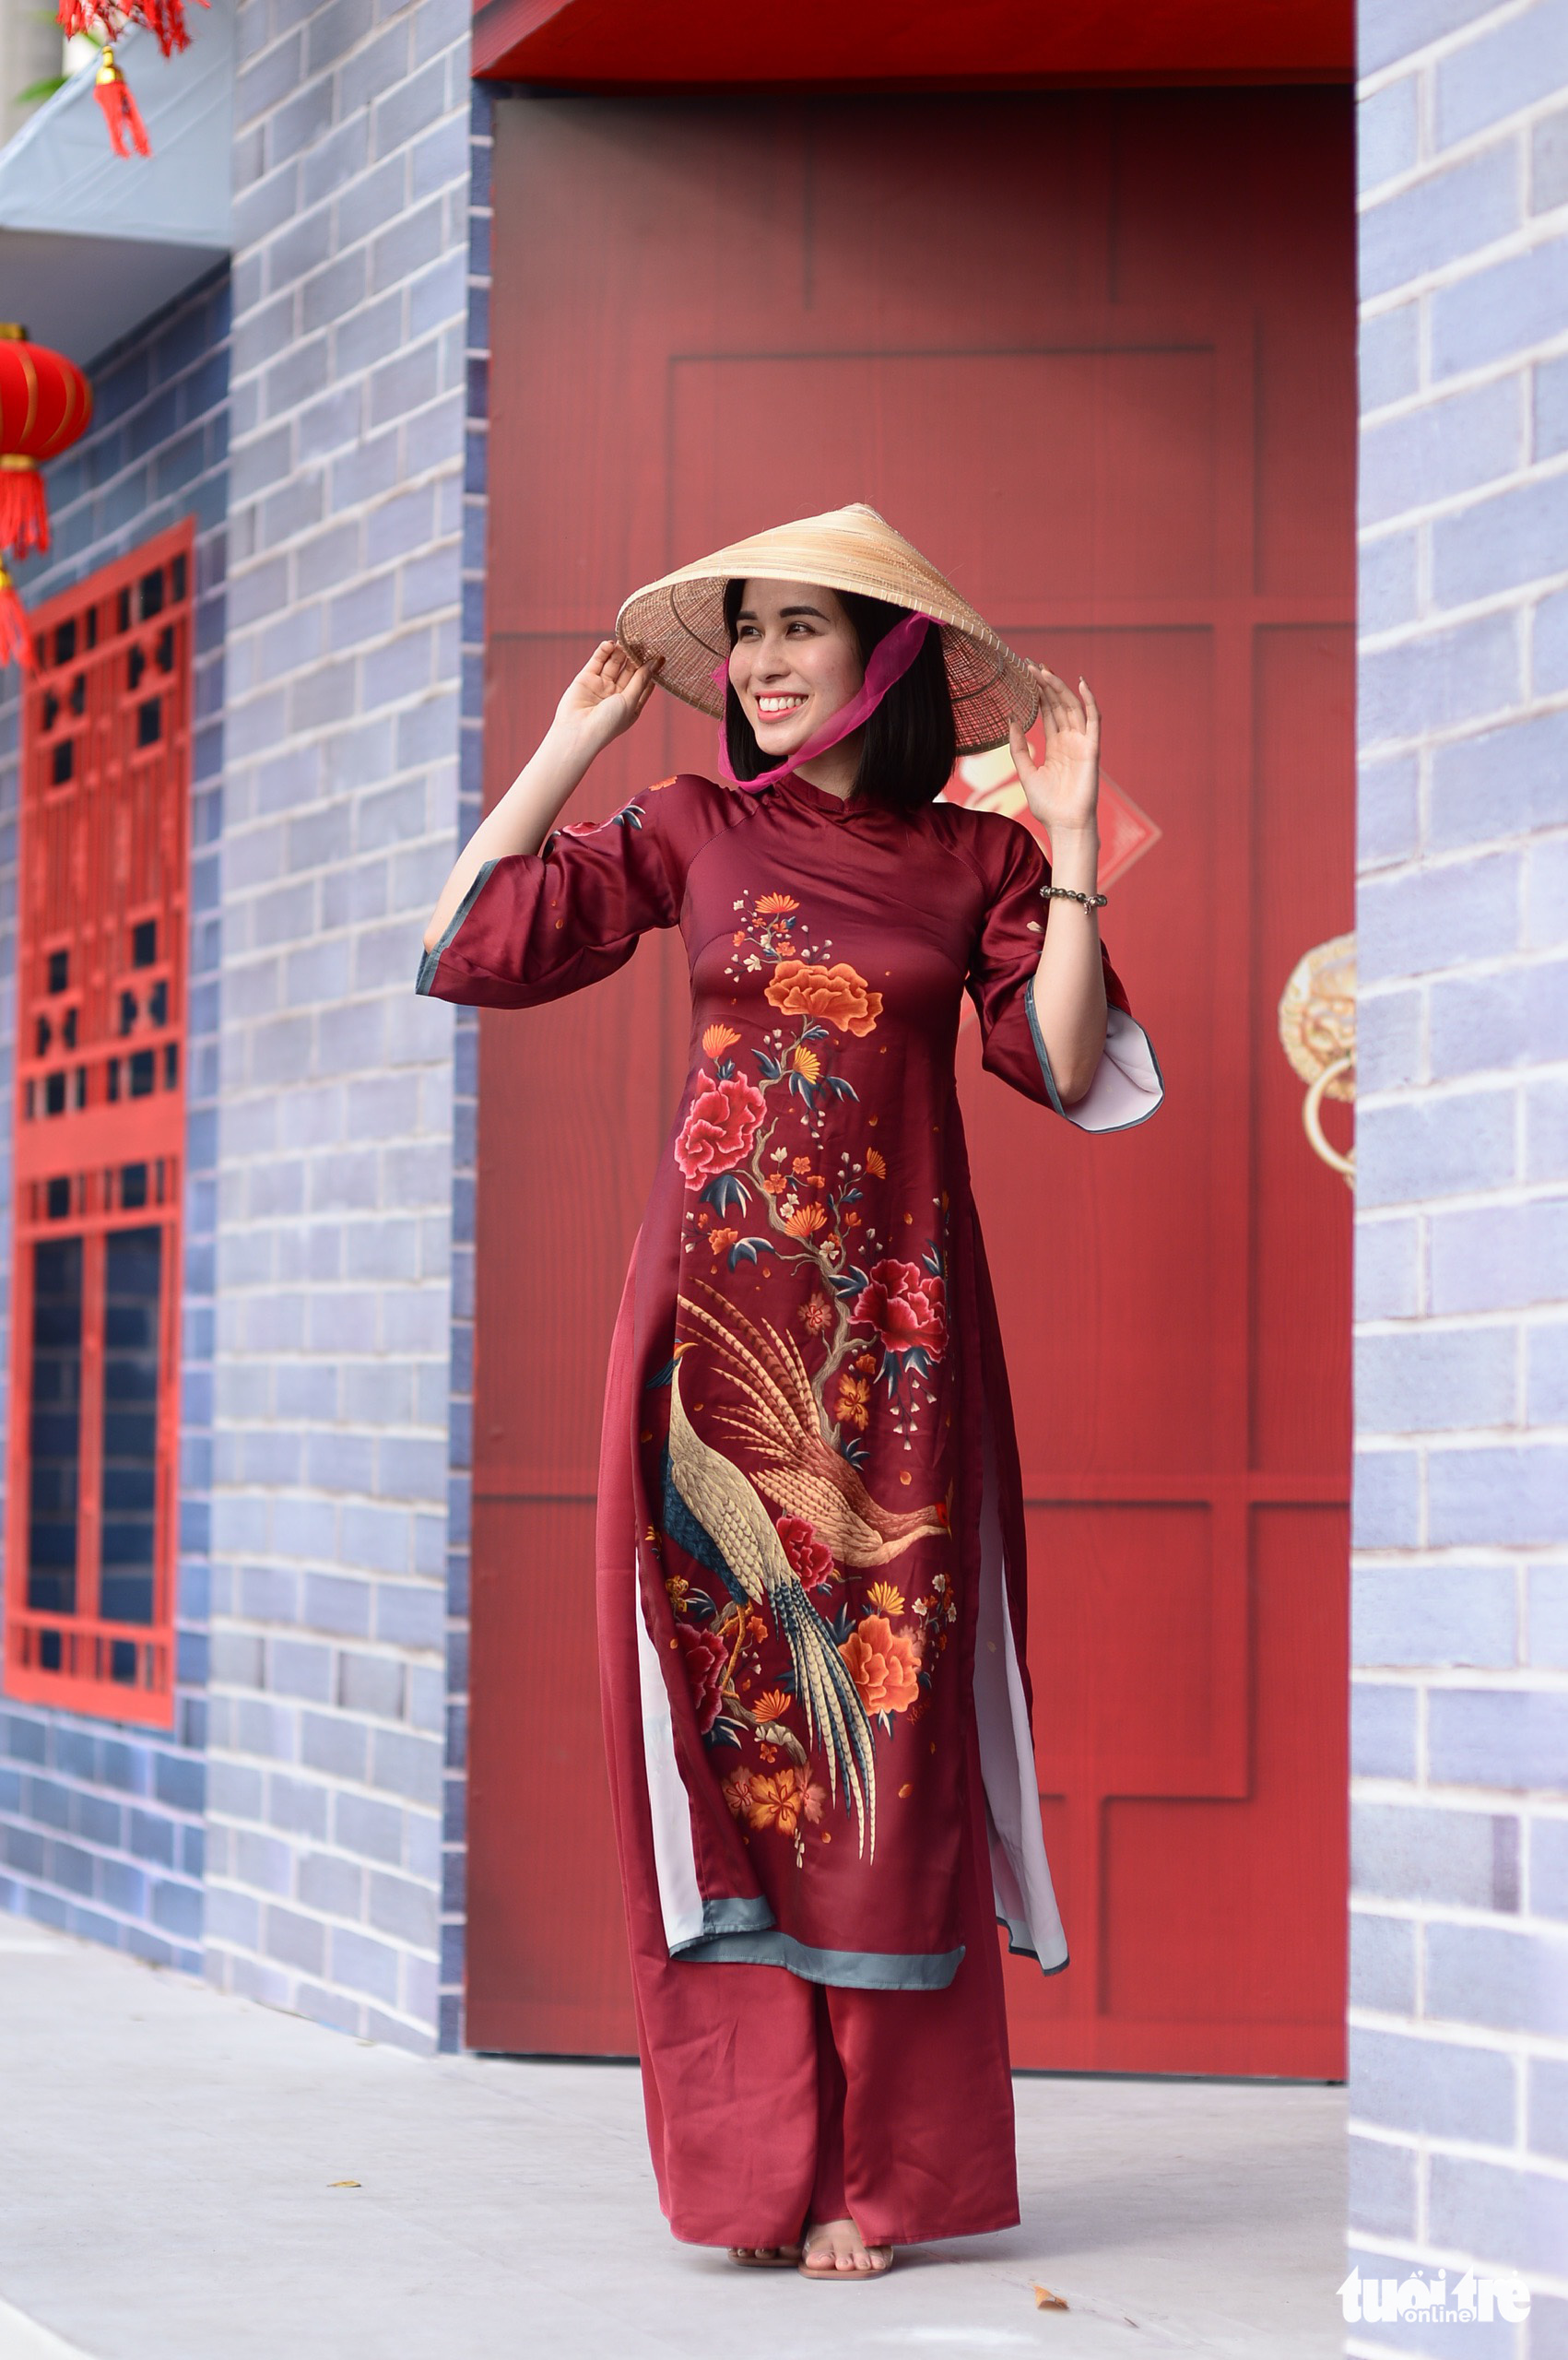 A woman poses for a photo at the Phu My Hung Spring Flowers Festival2021 in District 7, Ho Chi Minh City, February 4, 2021. Photo: Quang Dinh / Tuoi Tre